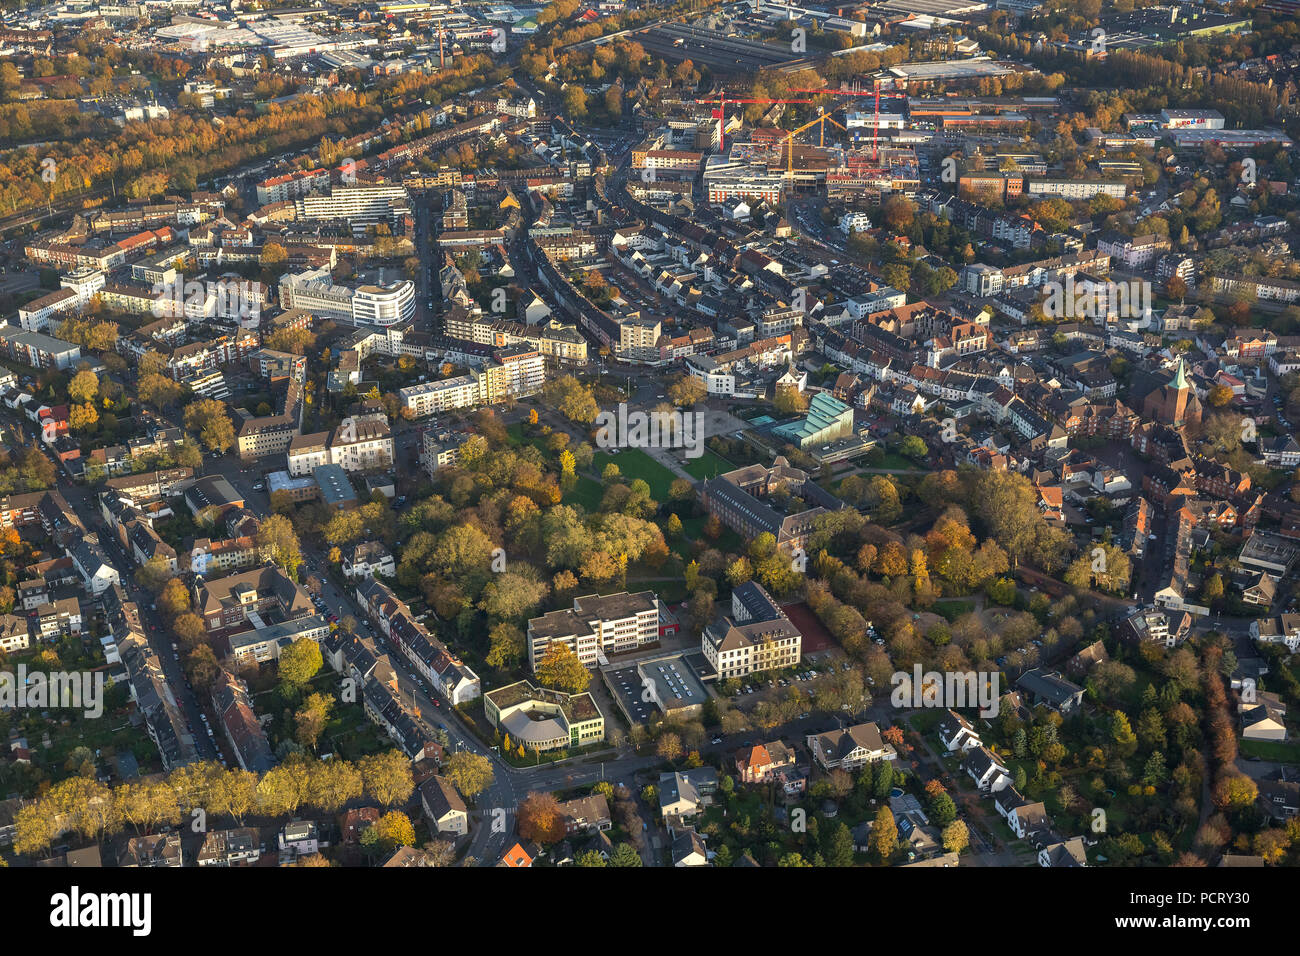 City center with city hall, Dinslaken, Ruhr area - Stock Image